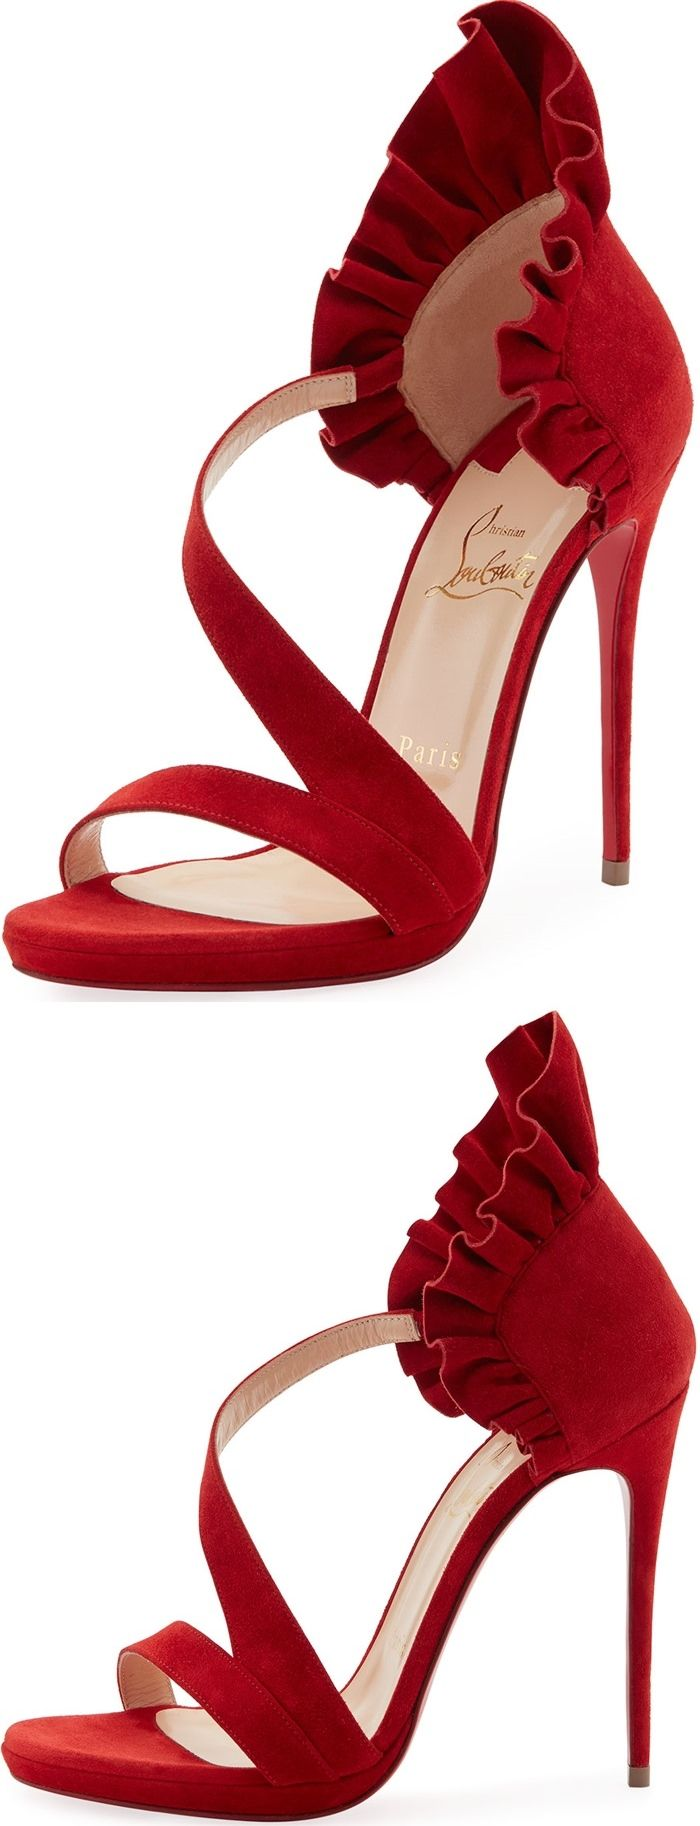 Christian Louboutin's 'Colankle' Sculptural Ruffle Sandals